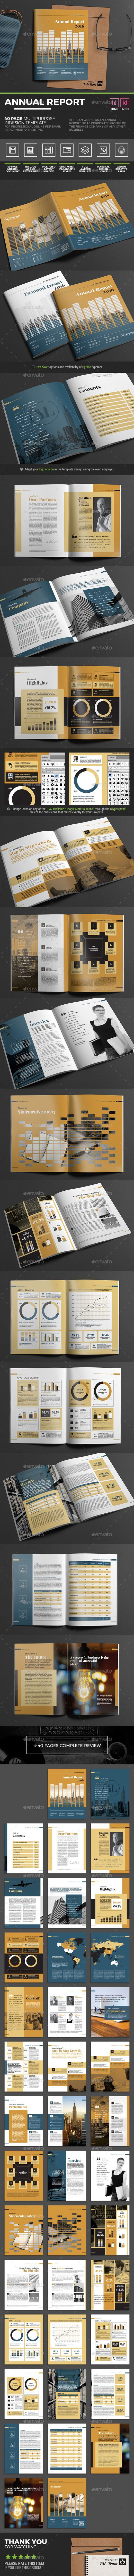 Annual Report Brochure - 40 Page Indesign #Template - #Corporate #Brochures Download here: https://graphicriver.net/item/annual-report-brochure-40-page-indesign-template/18310759?ref=alena994 #FinanceBrochure